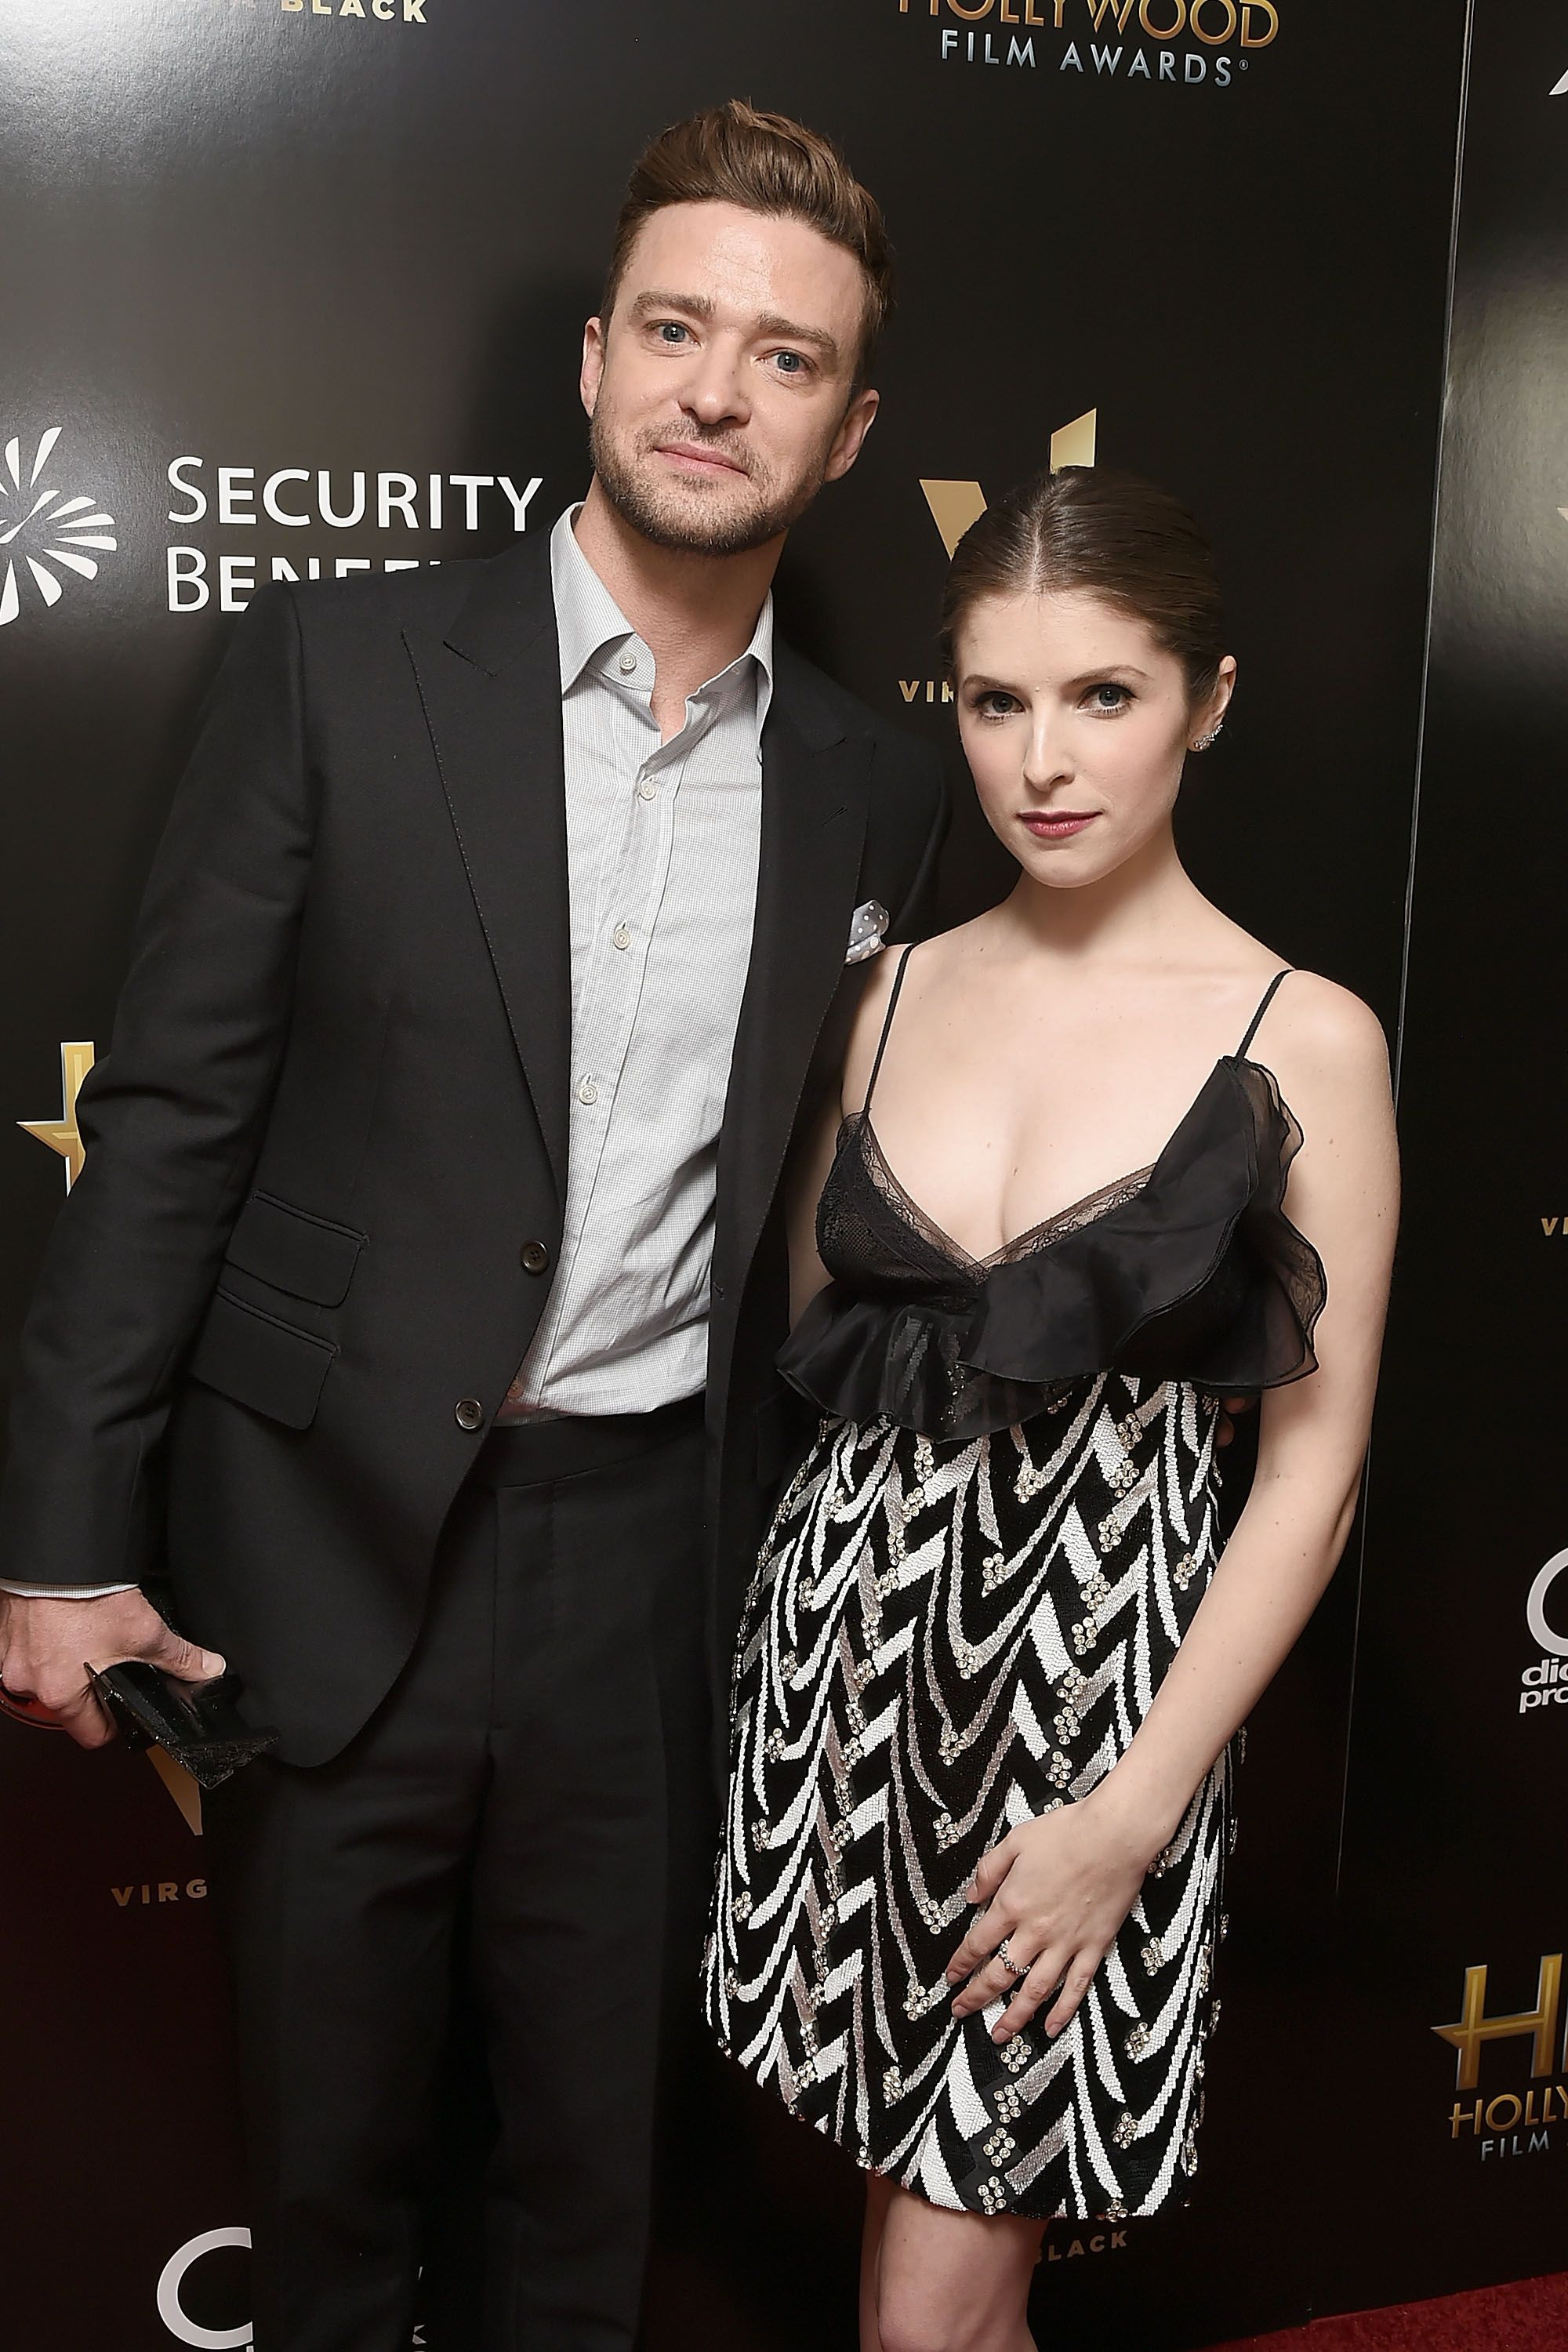 "<p>Justin Timberlake and Anna Kendrick<span class=""redactor-invisible-space""></span></p>"